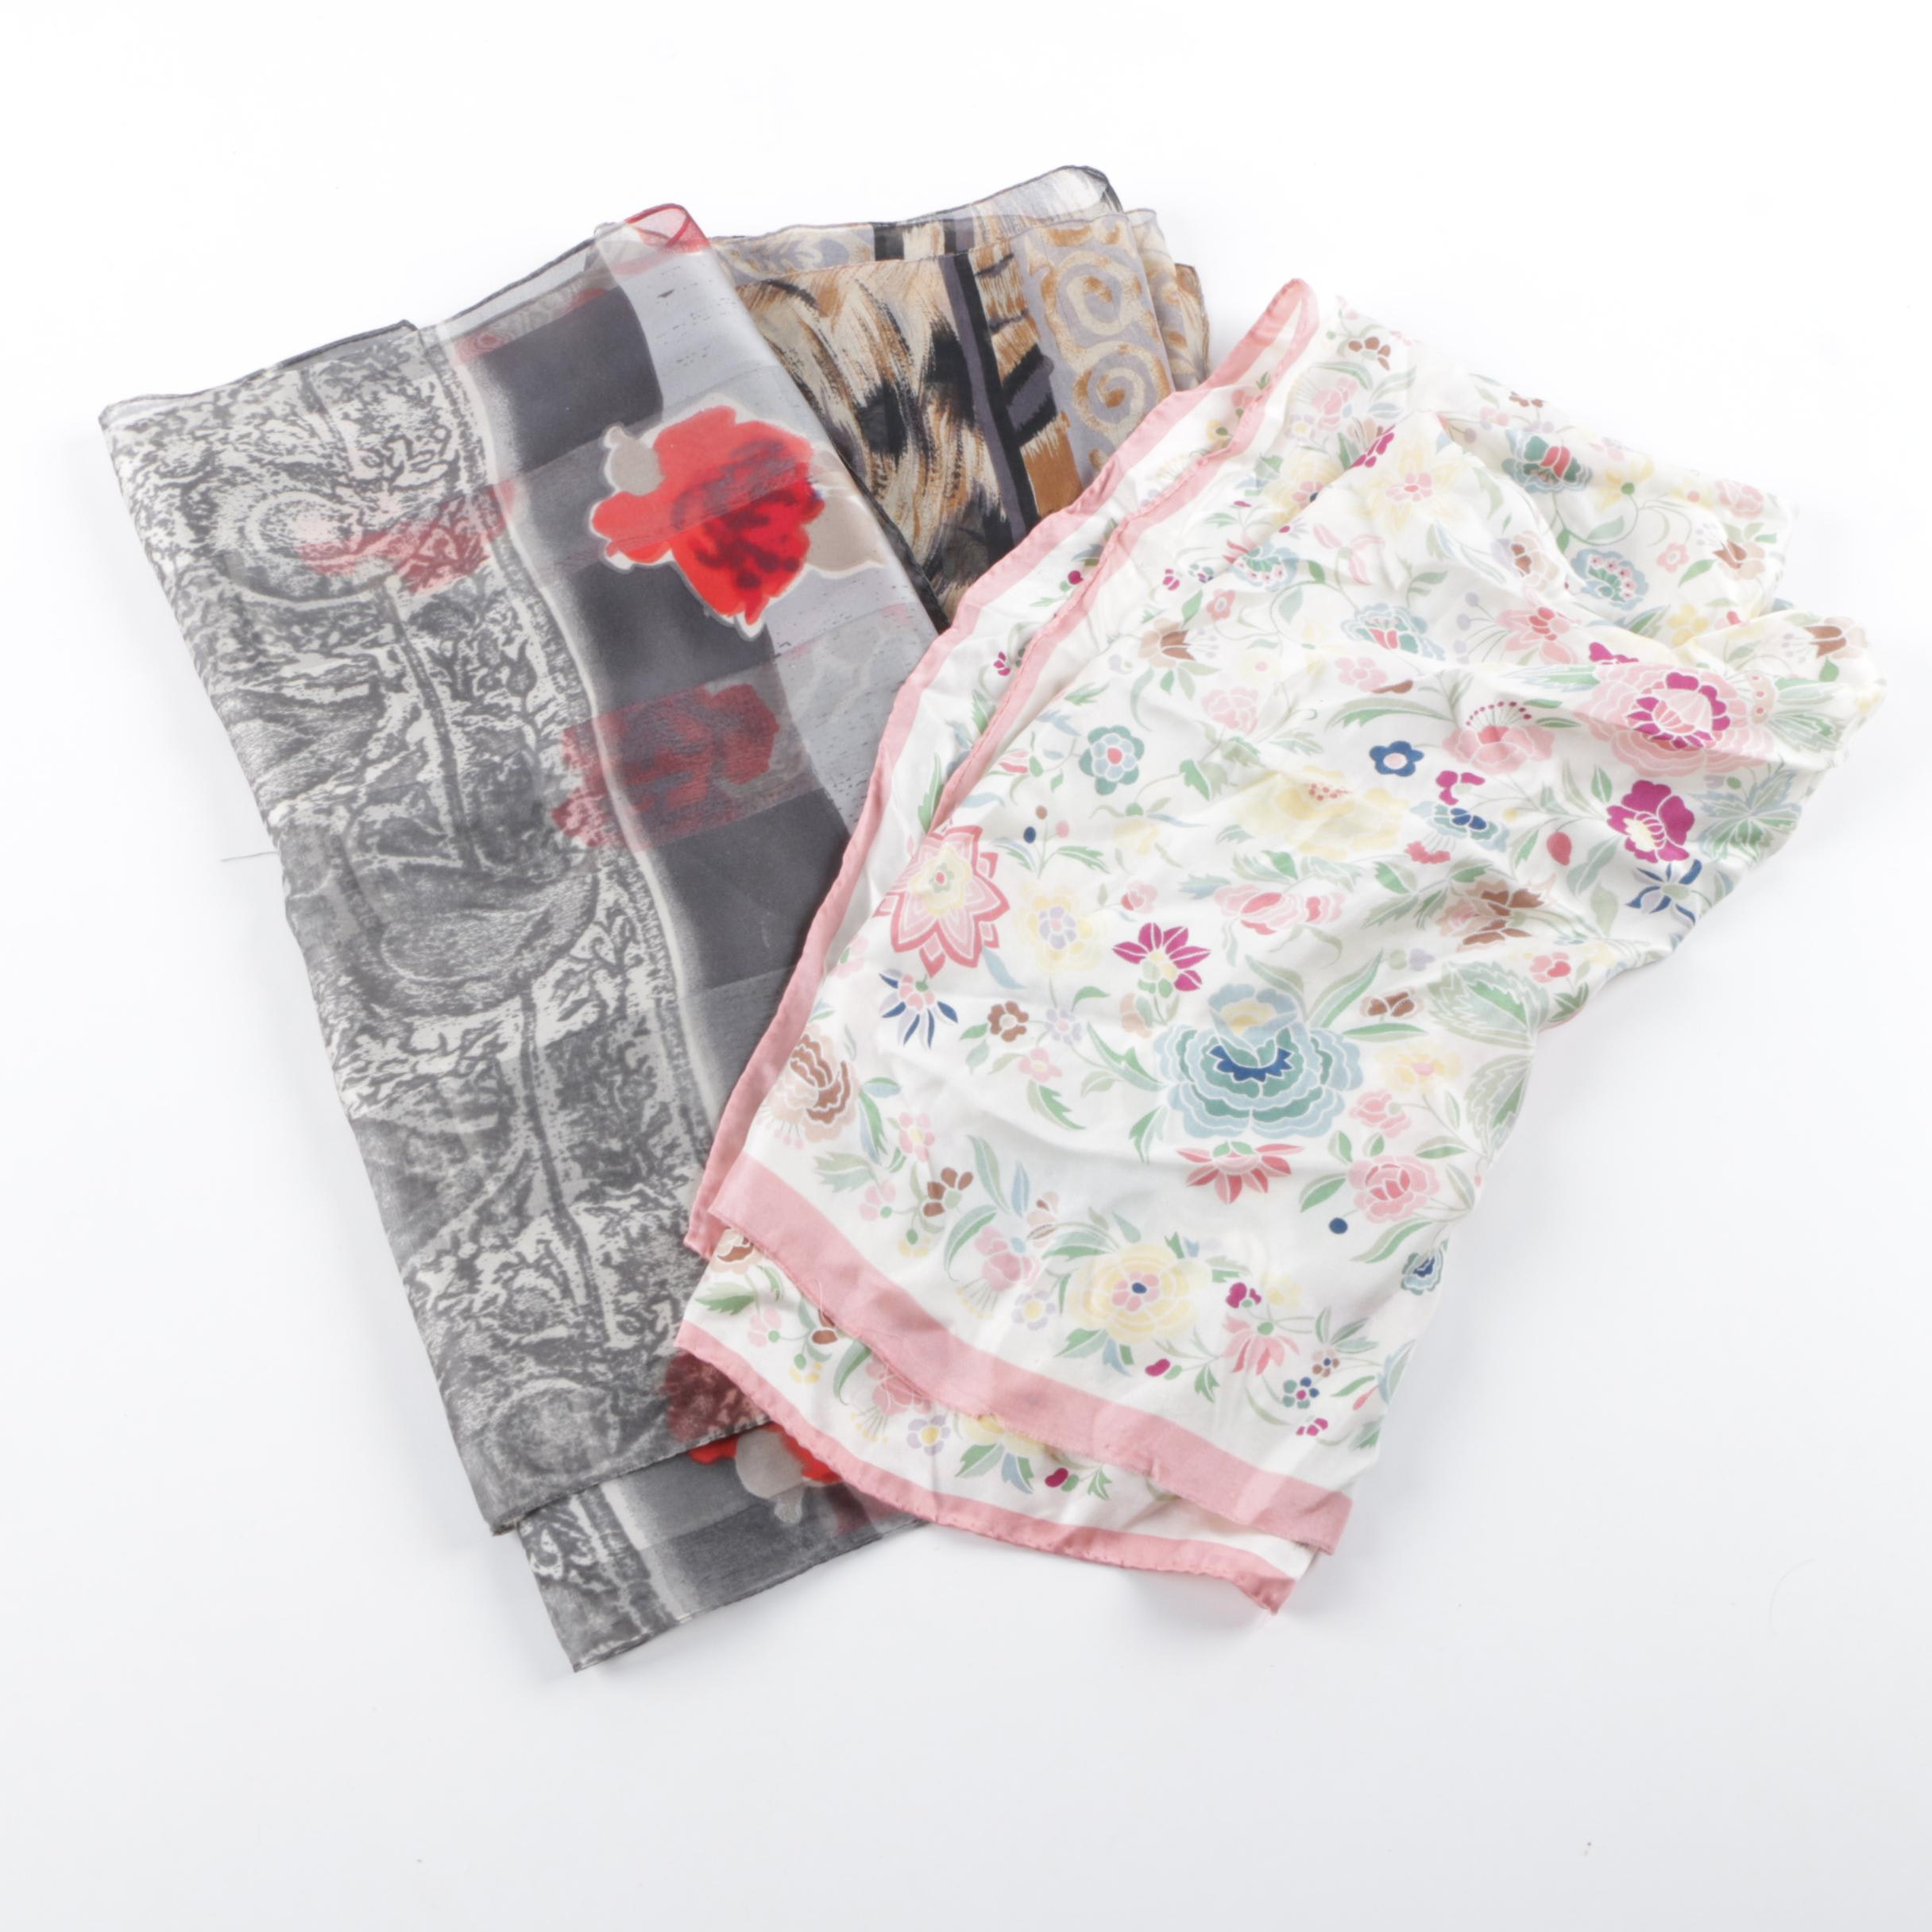 Women's Fashion Scarves Including Smithsonian Institution